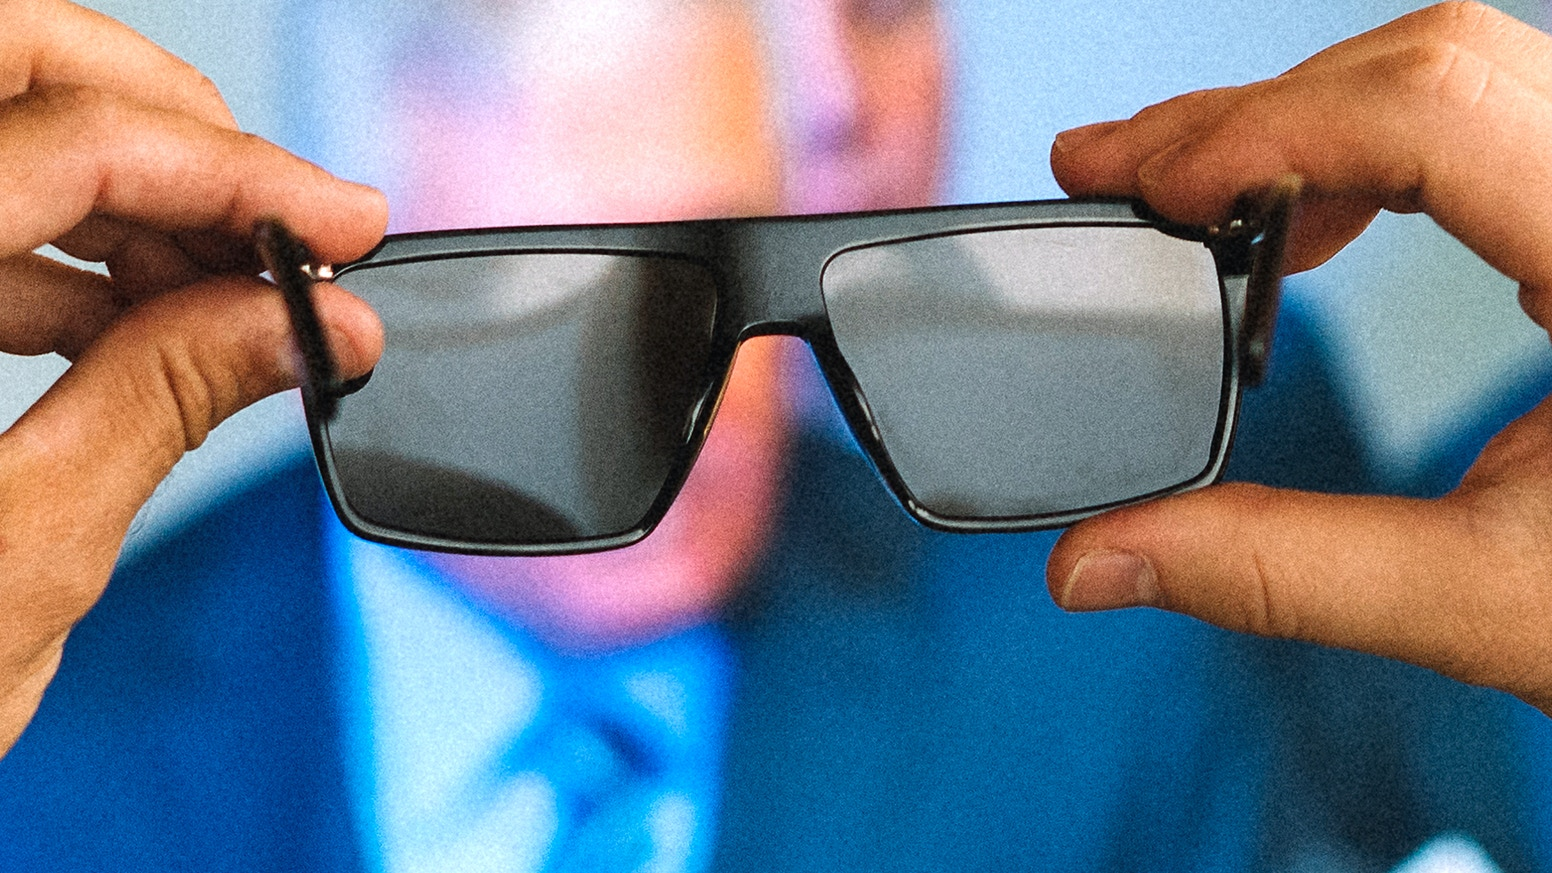 5da895028c9c1 Glasses that allow you to live IRL (In Real Life) and see everything except